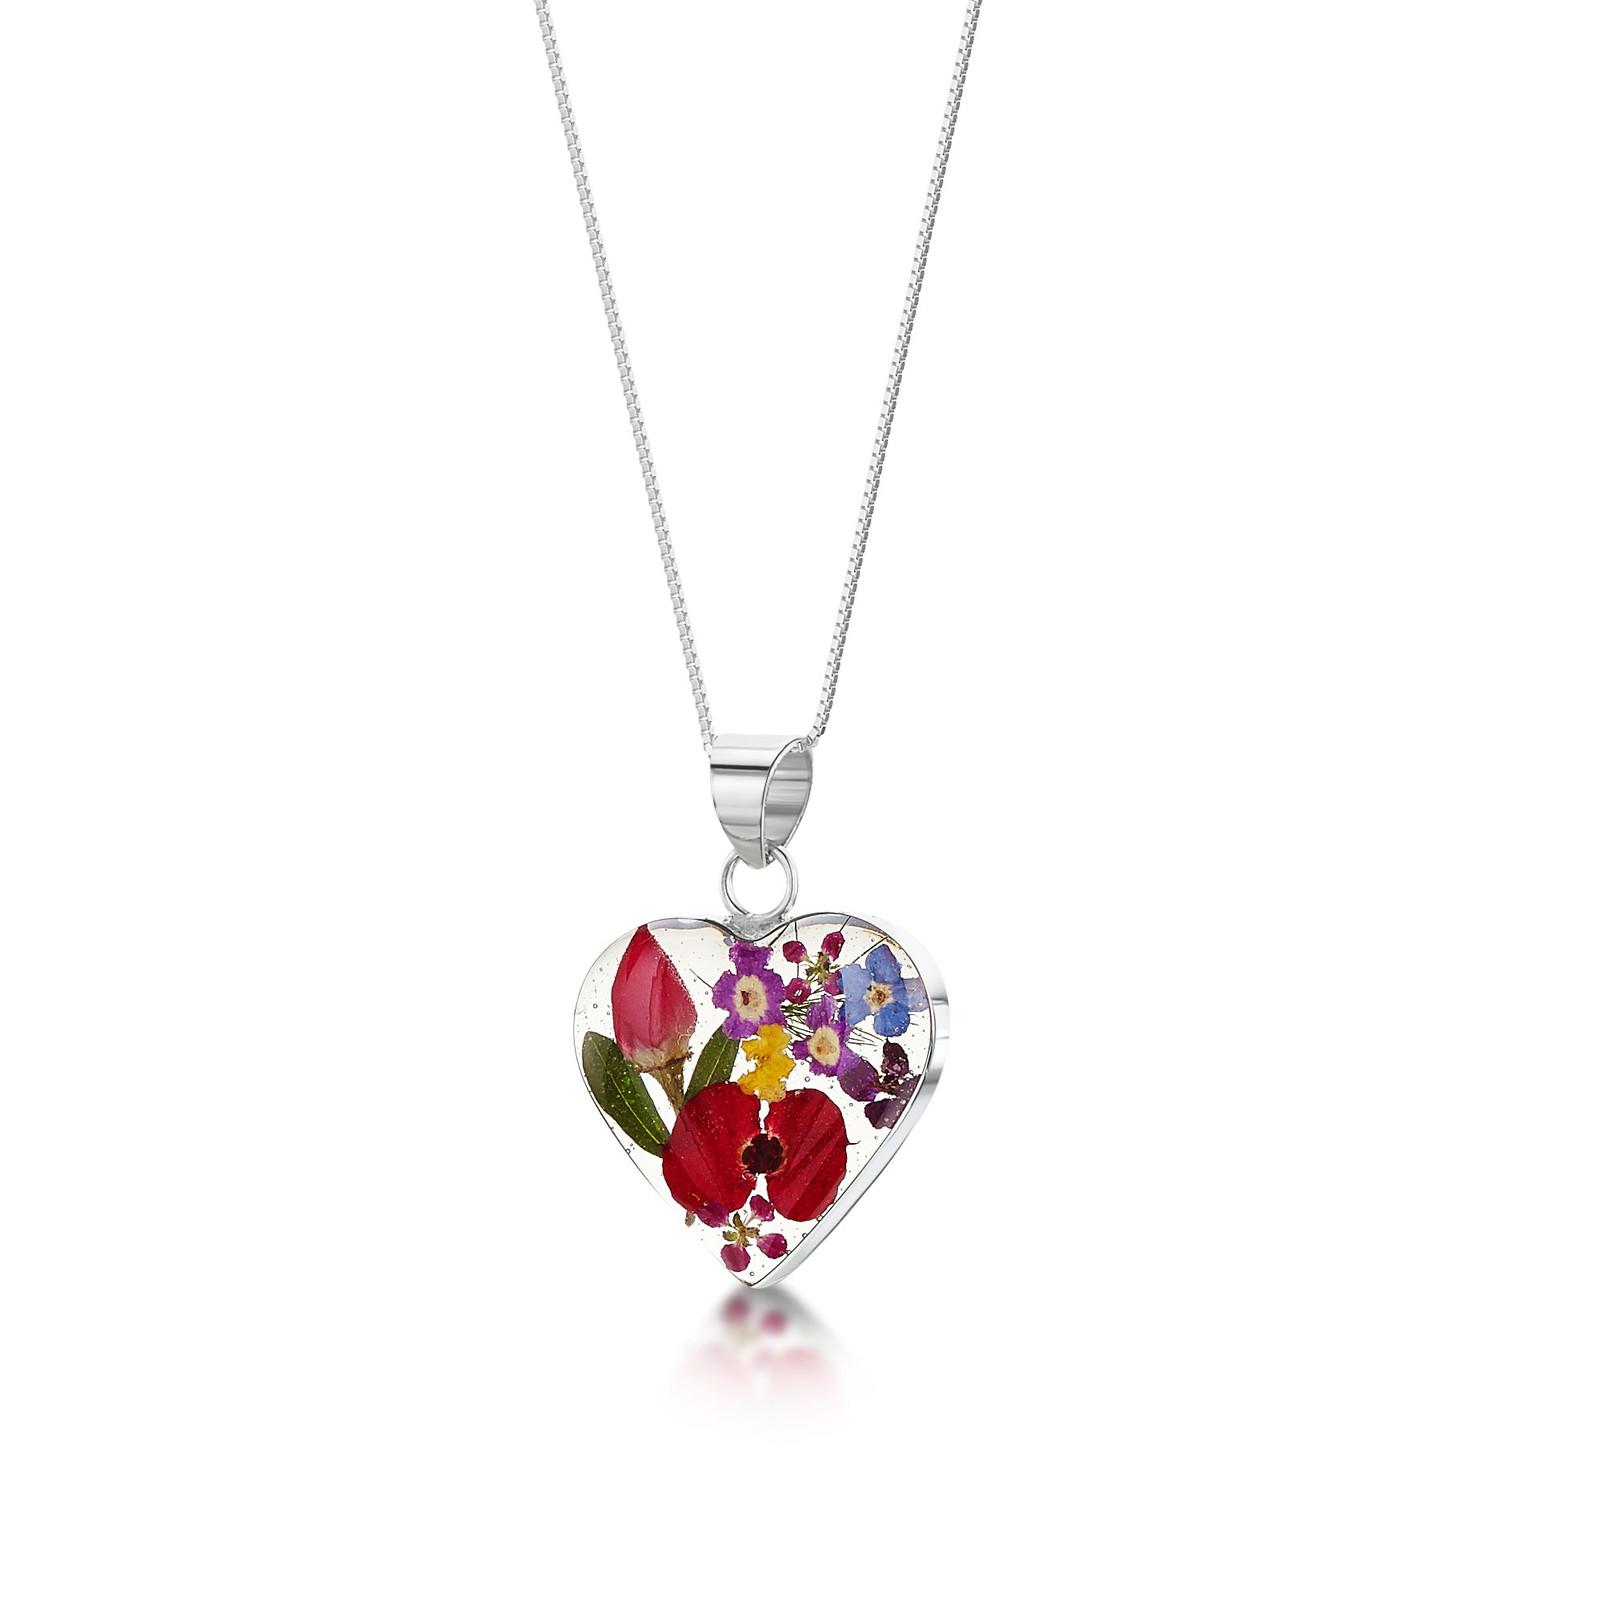 MIXED FLOWER HEART NECKLACE